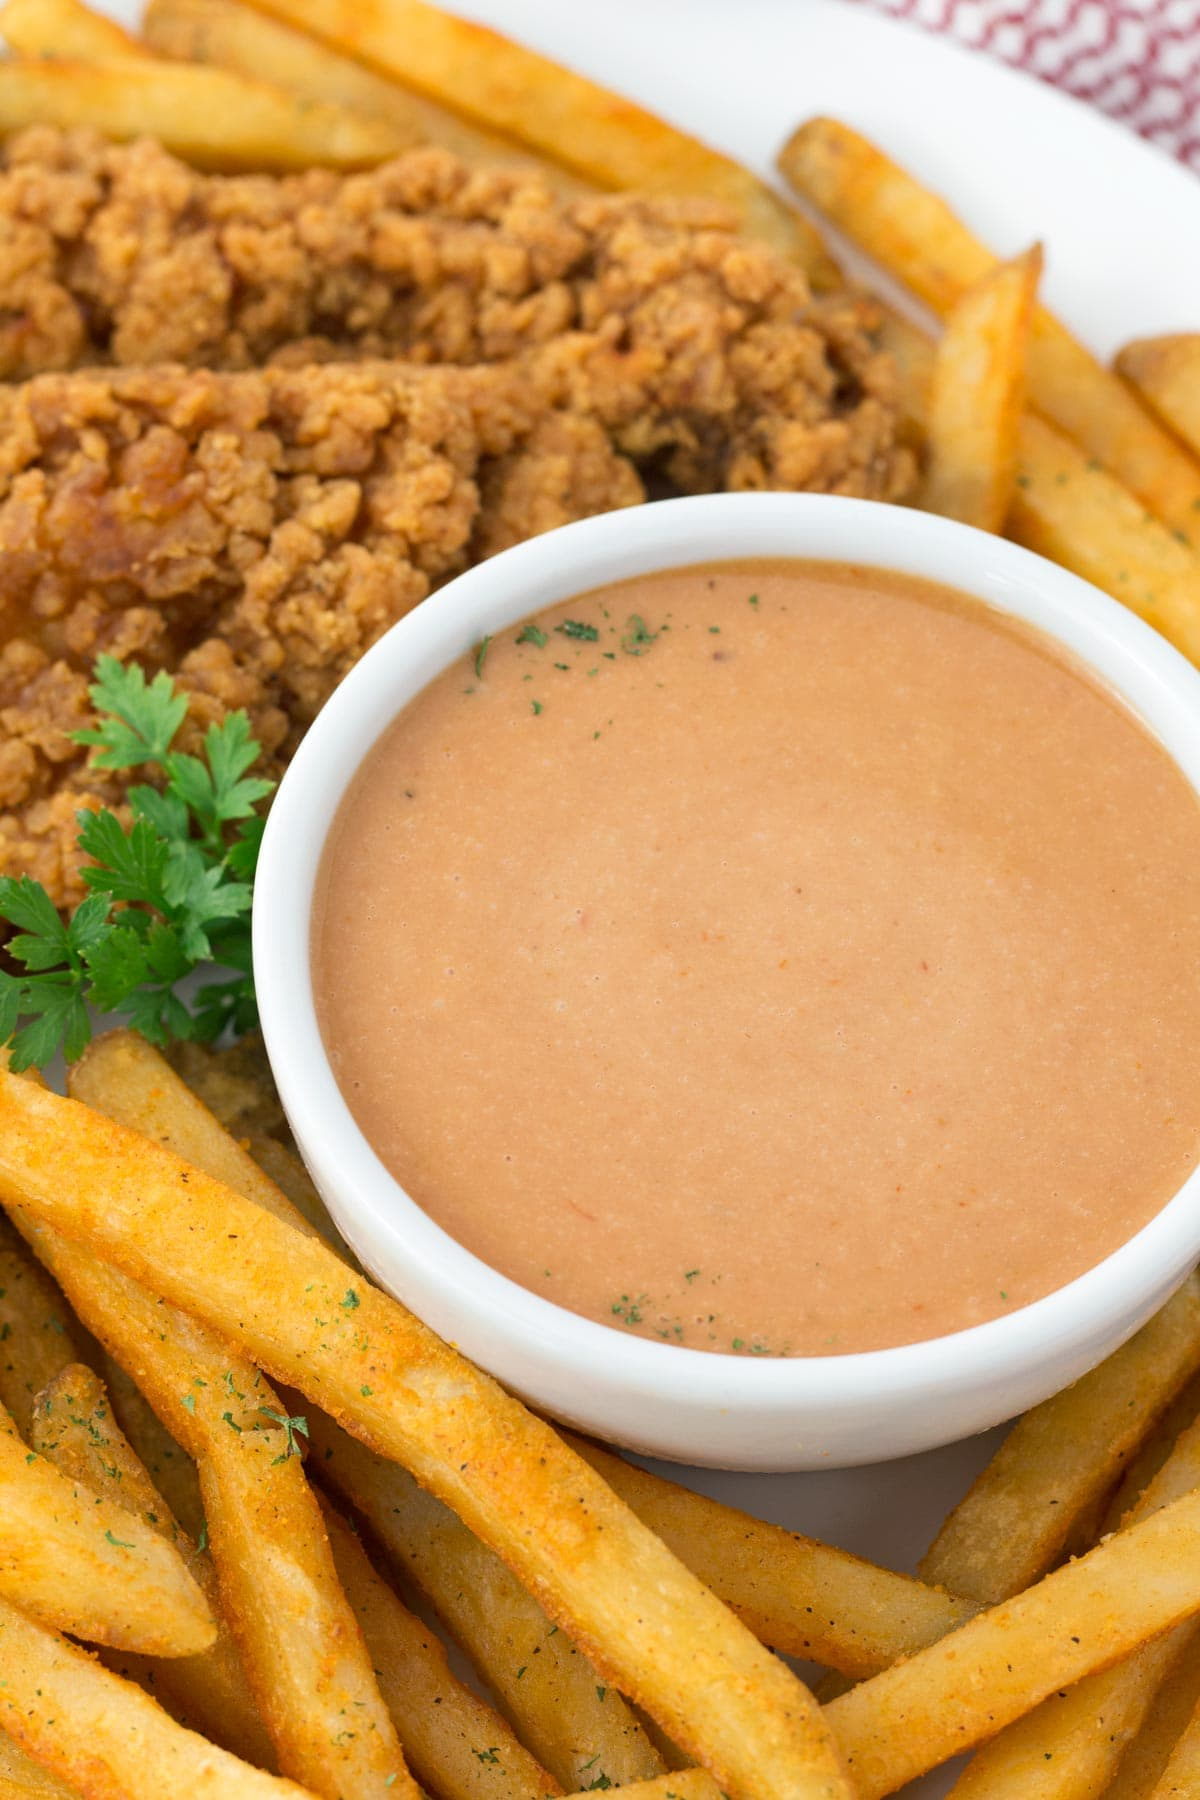 Bowl of Red Robin dipping sauce surrounded by fries and chicken tenders.